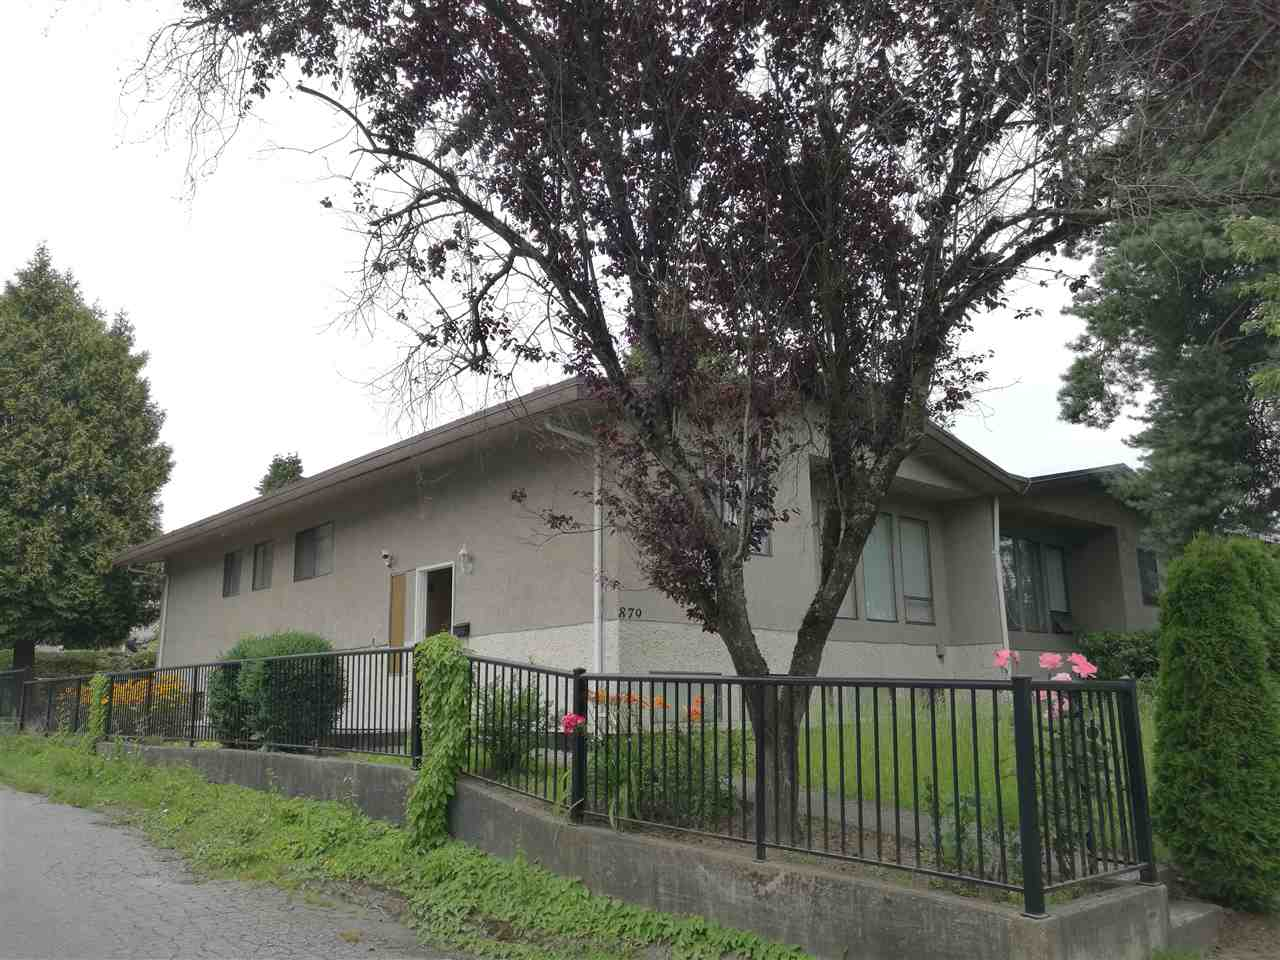 Very good opportunity to buy this large Vancouver special 1/2 duplex. 3 bedrooms on the main floor including an ensuite master bedroom.  4 bedrooms in basement with separate entrance may bring potential rental income as a strong mortgage helper. The house was almost completely renovated in 2008. A new hot water tank was replaced and the attic was refiled with insulated material for energy-saving in 2016. Minutes away for walking distance to Kensington Park and shopping centre. Close to Burnaby North Secondary School and SFU. Easy access to public transportation for Downtown and Metrotown, etc. Nice choice both for residence and investment. All measurements are approximate. Buyer needs to verify.